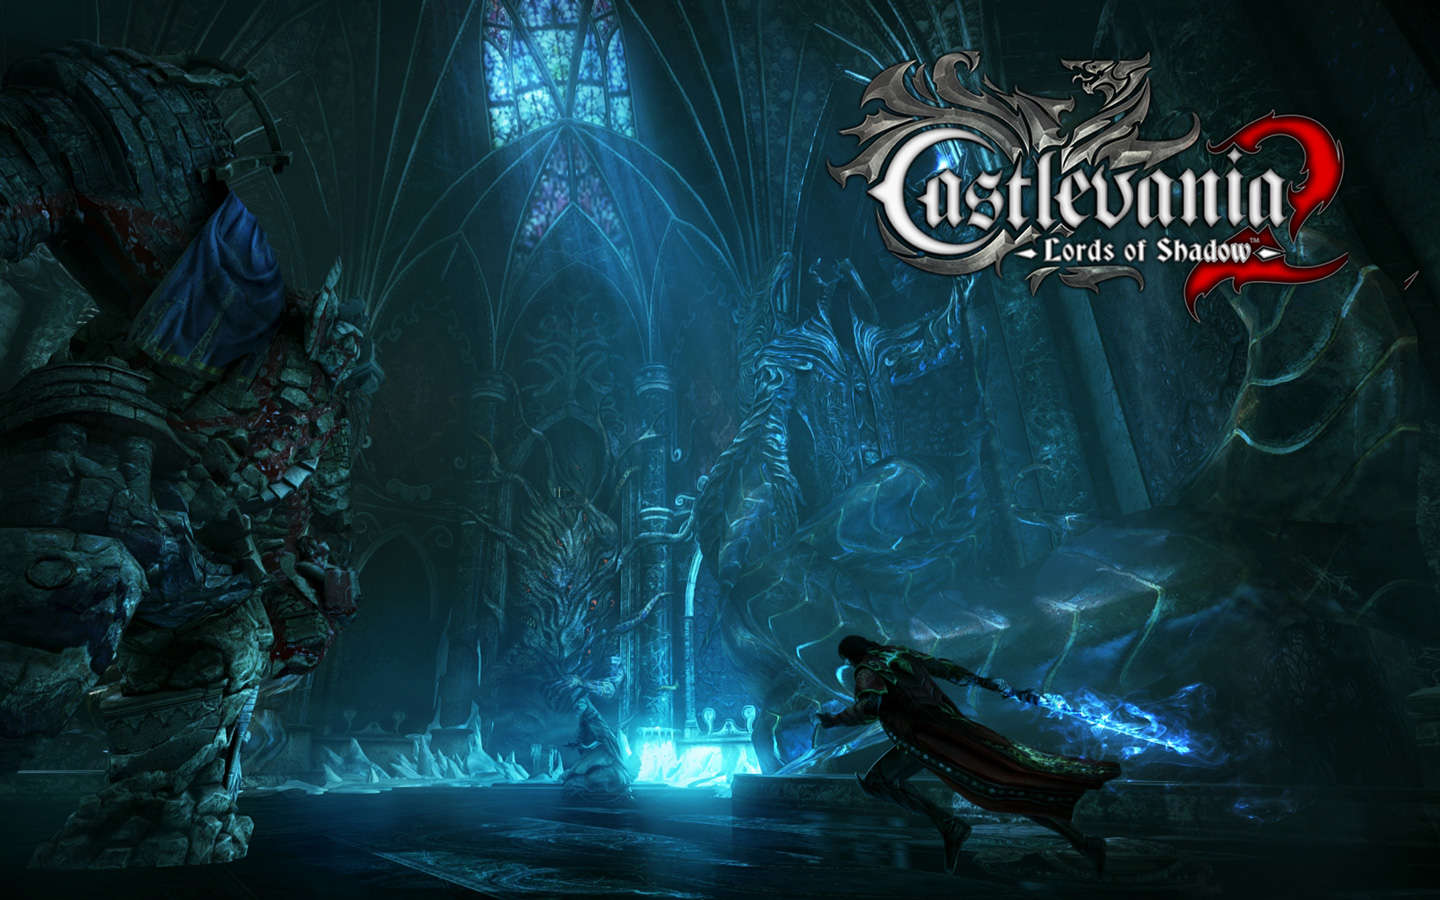 Castlevania: Lords of Shadow 2 Wallpaper in 1440x900